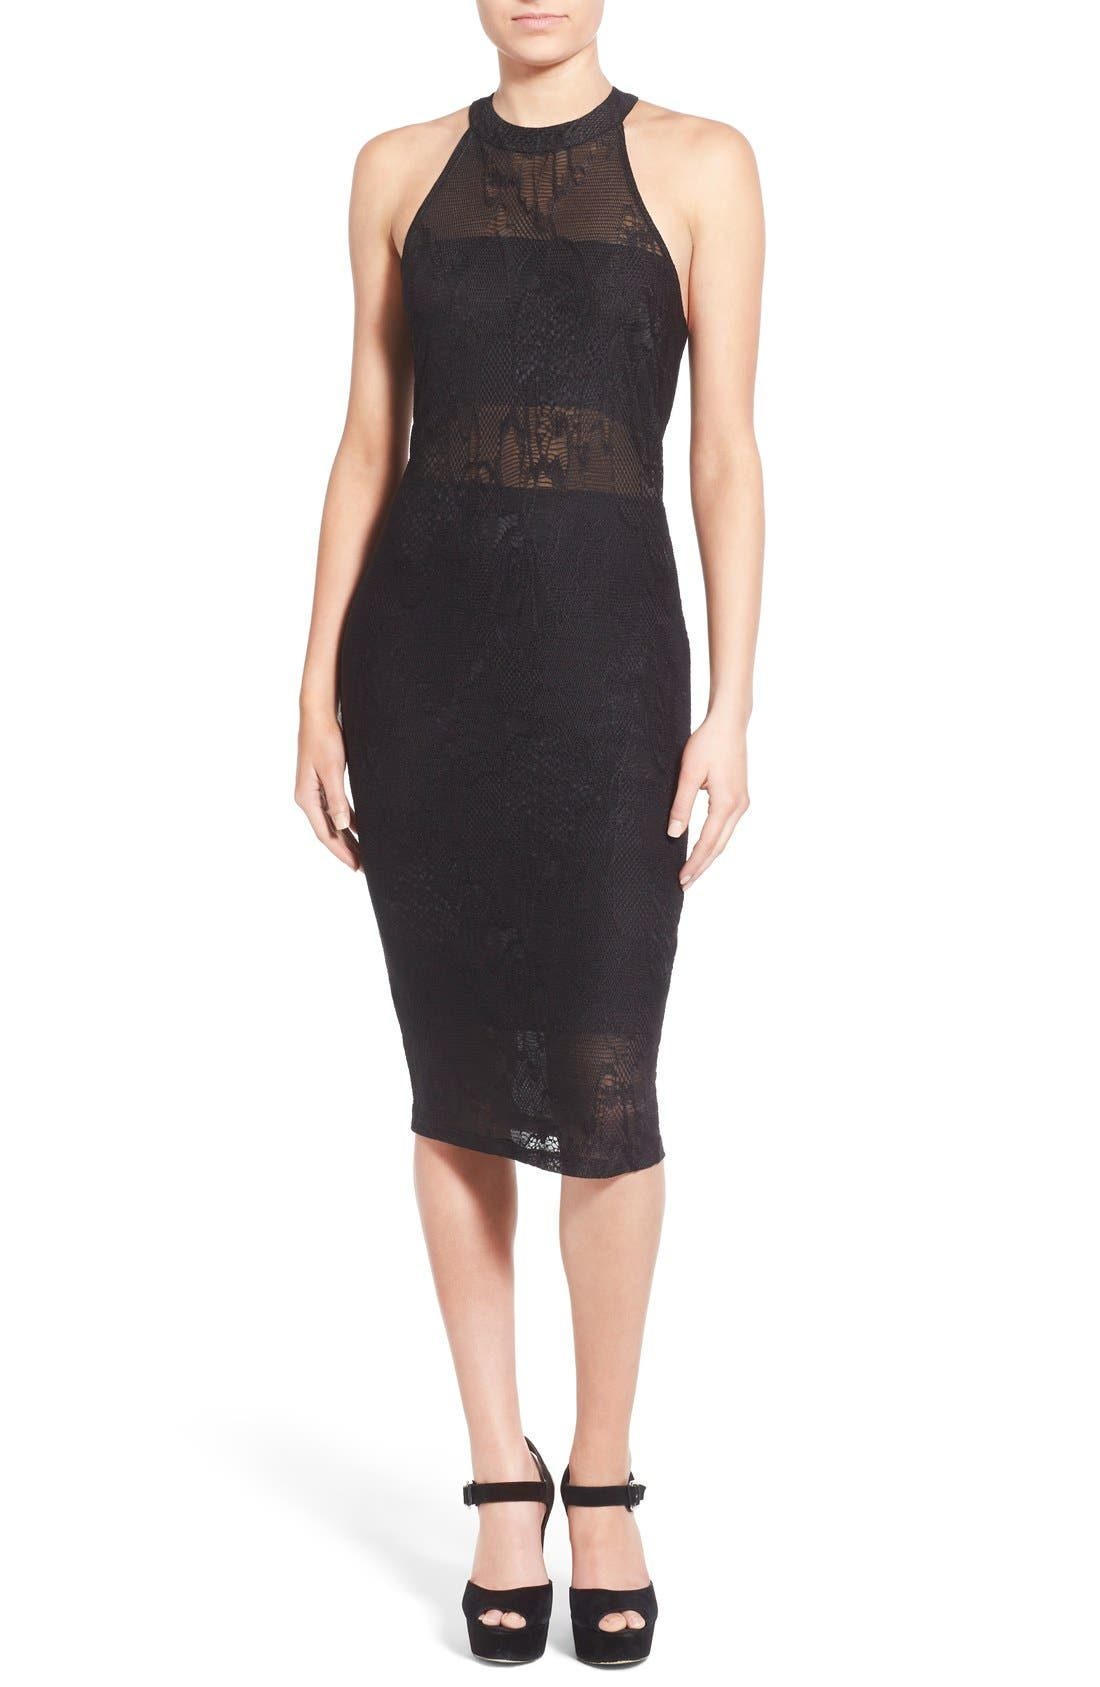 Alternate Image 1 Selected - Leith Floral Mesh Overlay Body-Con Dress